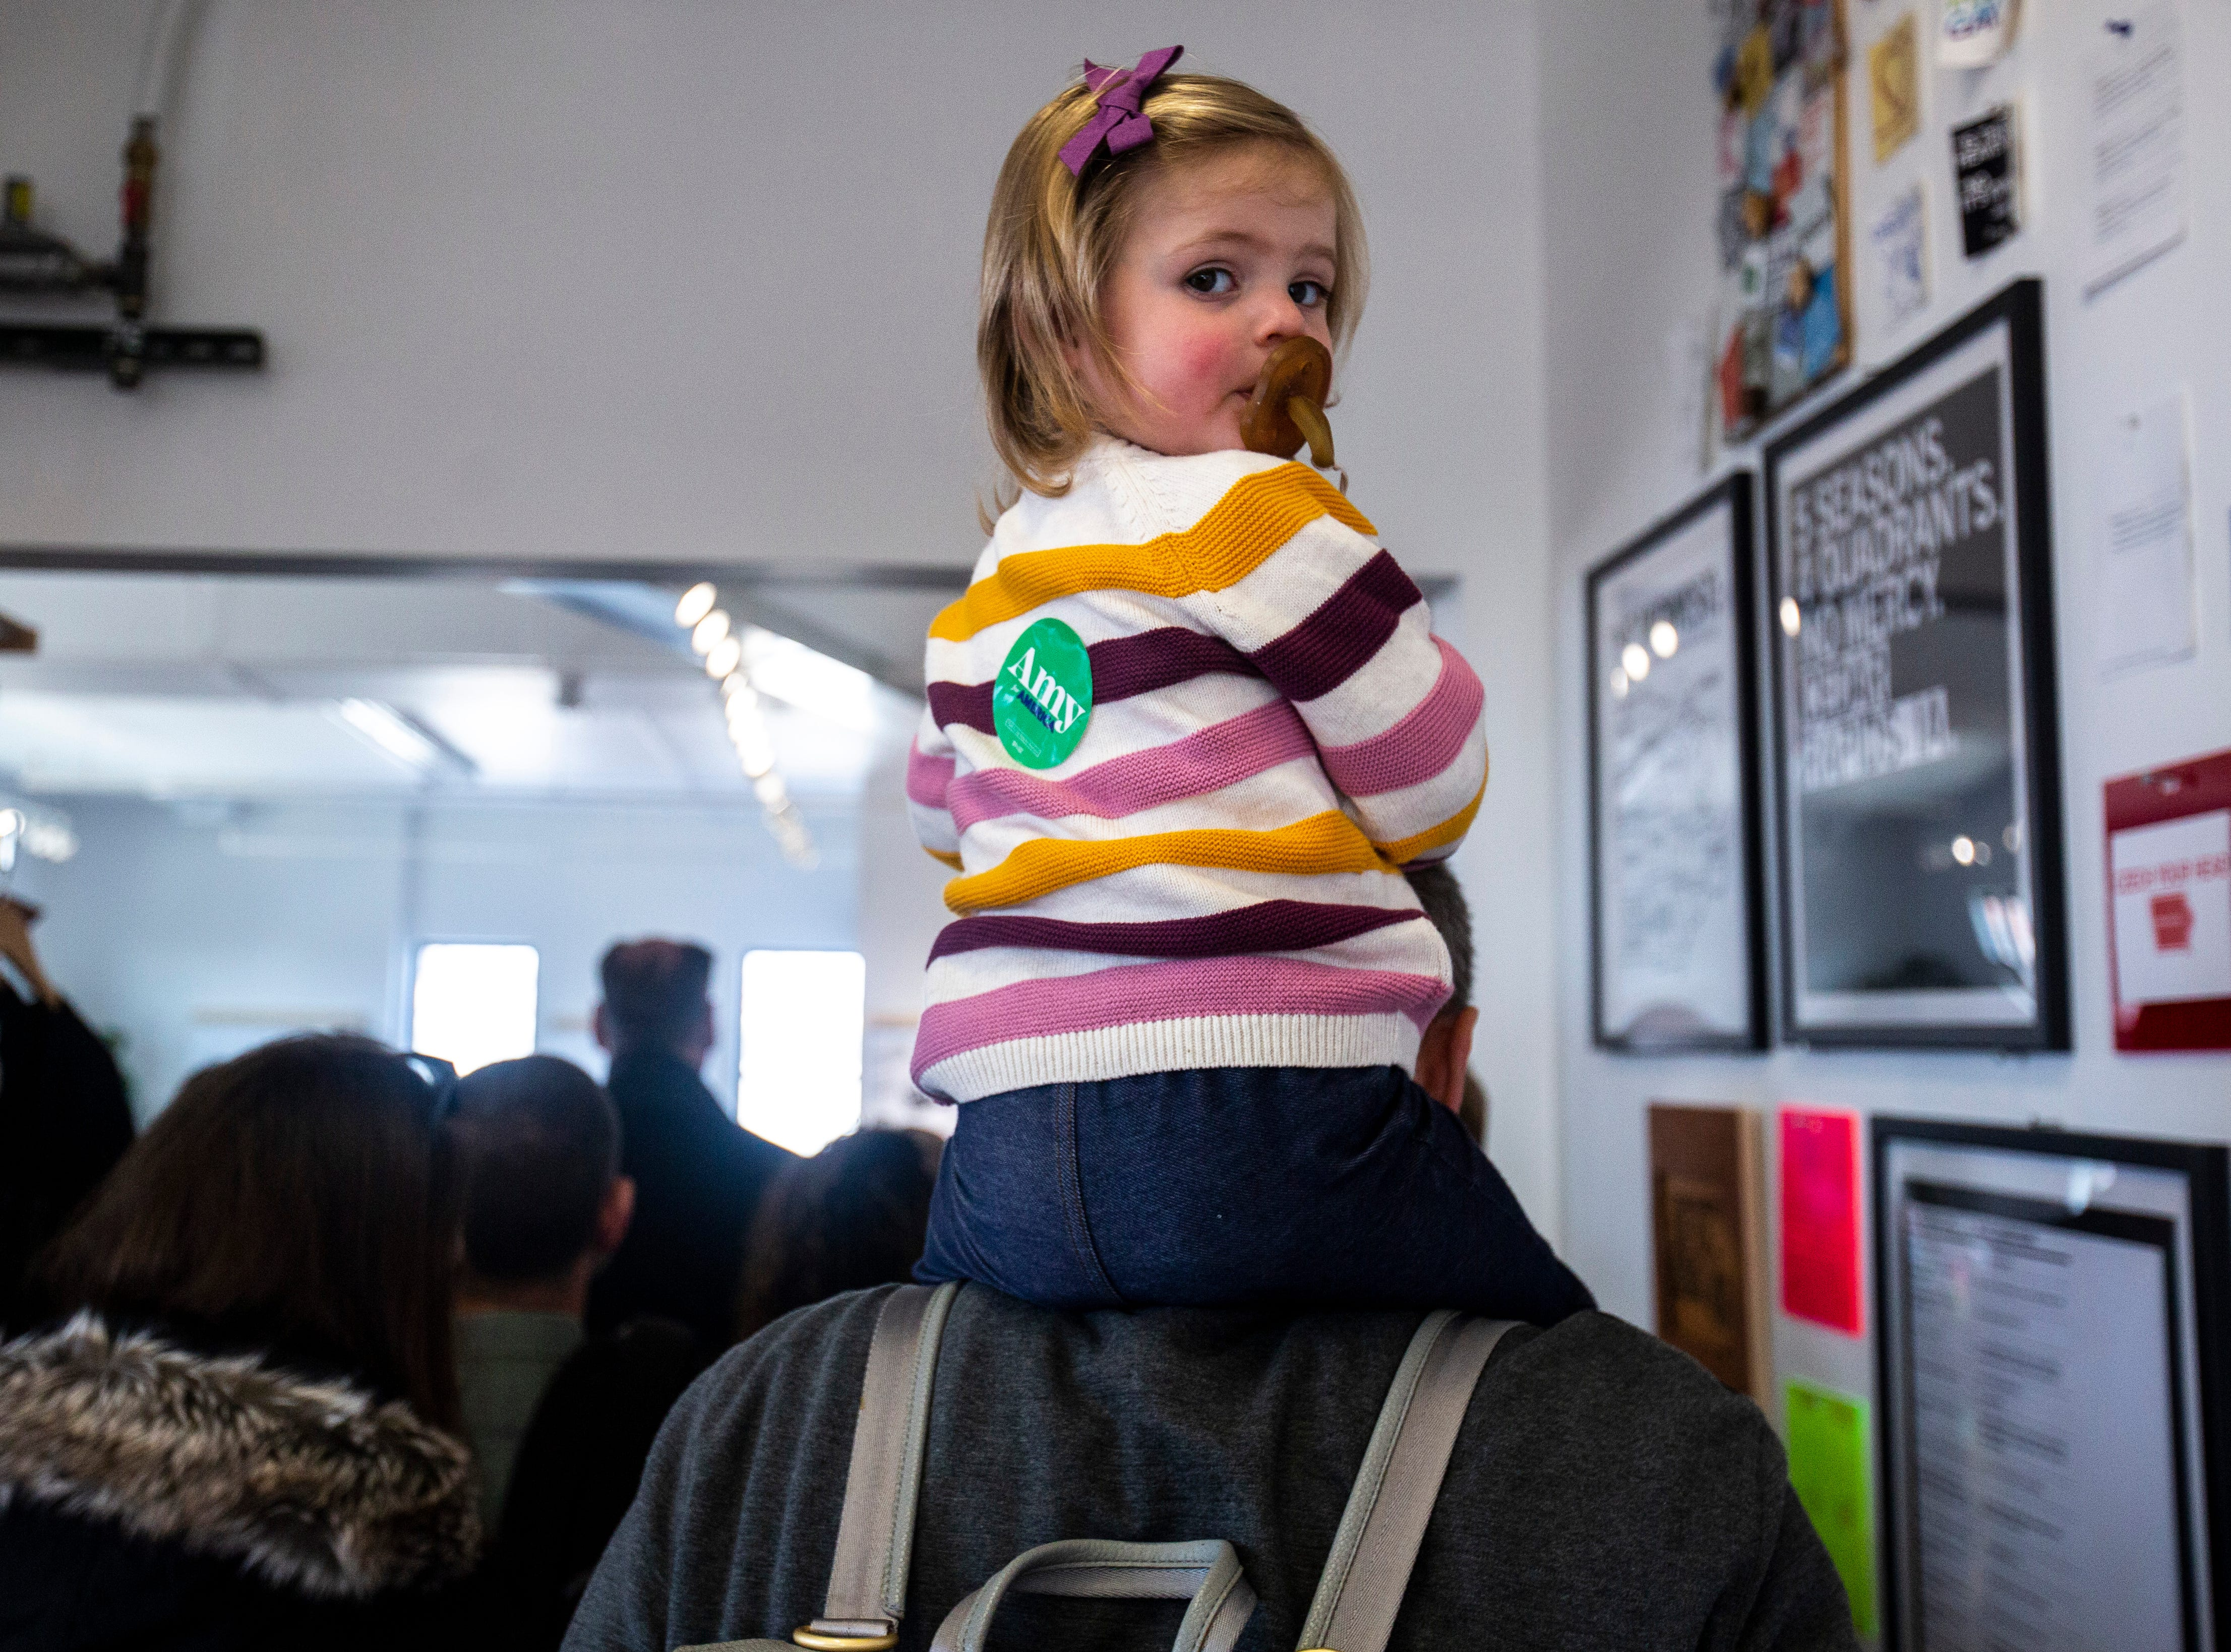 """Scout Crow, 1, looks over her shoulder while sitting on the shoulders of her father Tom Crow while U.S. Sen. Amy Klobuchar, D-Minn., speaks to the Linn County Phoenix Club on Sunday, March 17, 2019, at Raygun, a t-shirt store, in downtown Cedar Rapids, Iowa. Tom Crow and family recently moved from Minnesota, saying he came out to hear the senator speak because, """"None of this stuff happens there,"""" adding that he is excited to learn about the candidates while they come through Iowa."""